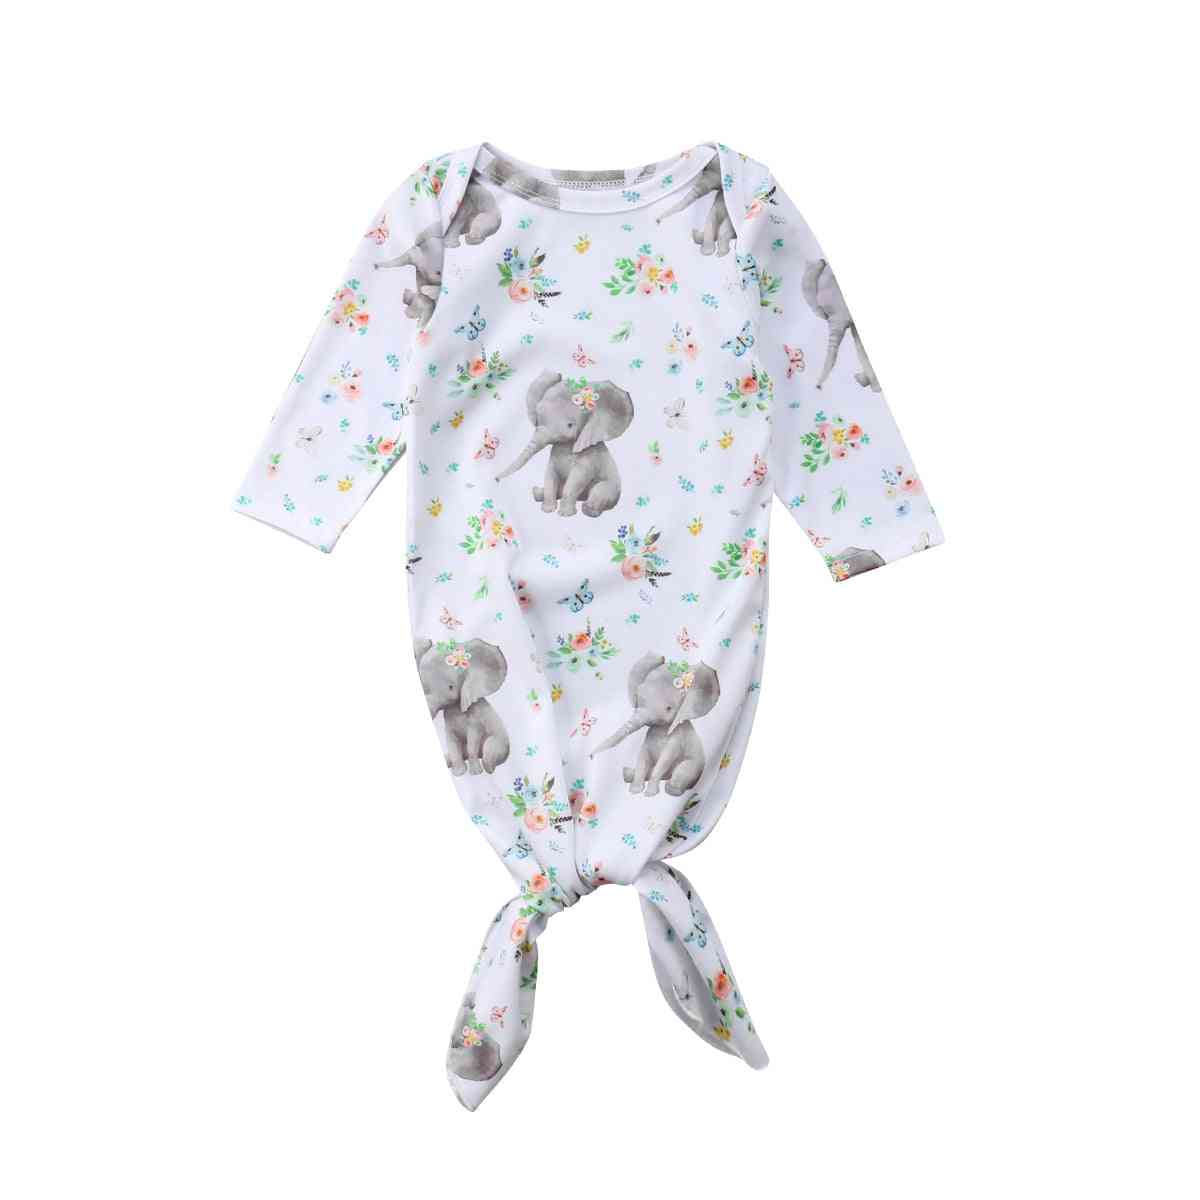 Baby Long Sleeve Elephant Print Floral Swaddle Wrap Outfits